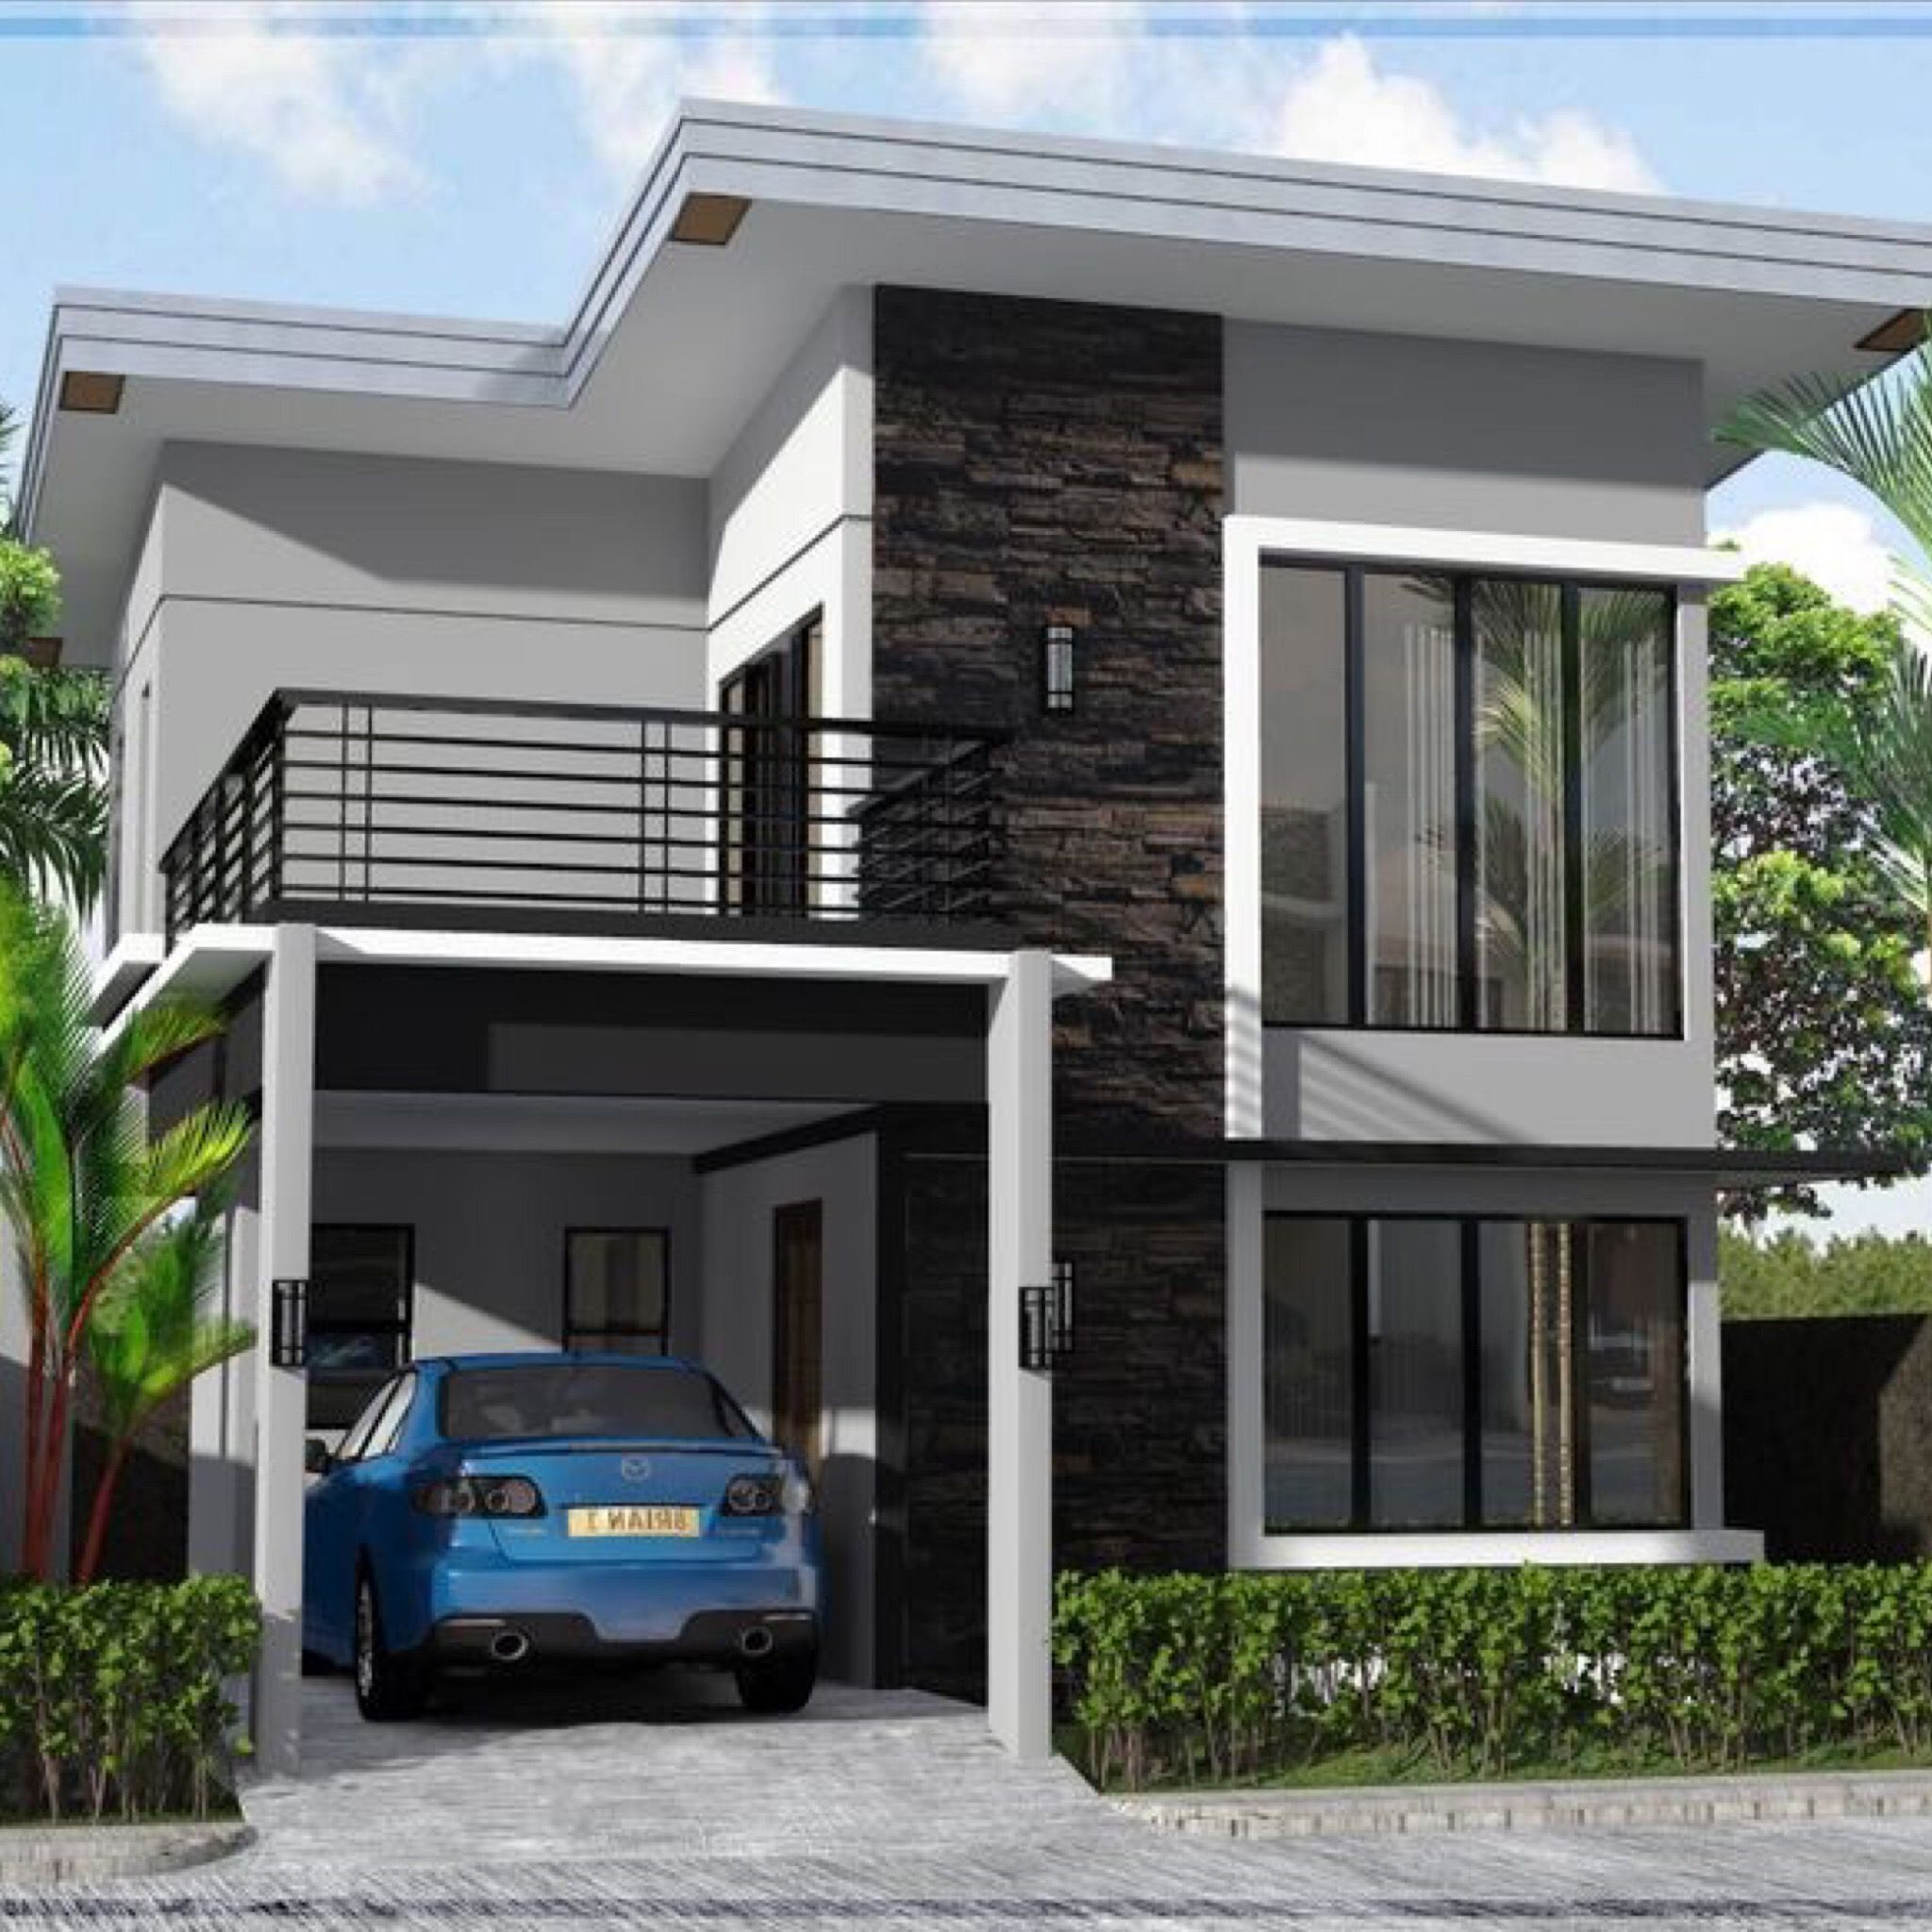 Mygoal my house plans duplex villa design modern also locali in pinterest and rh